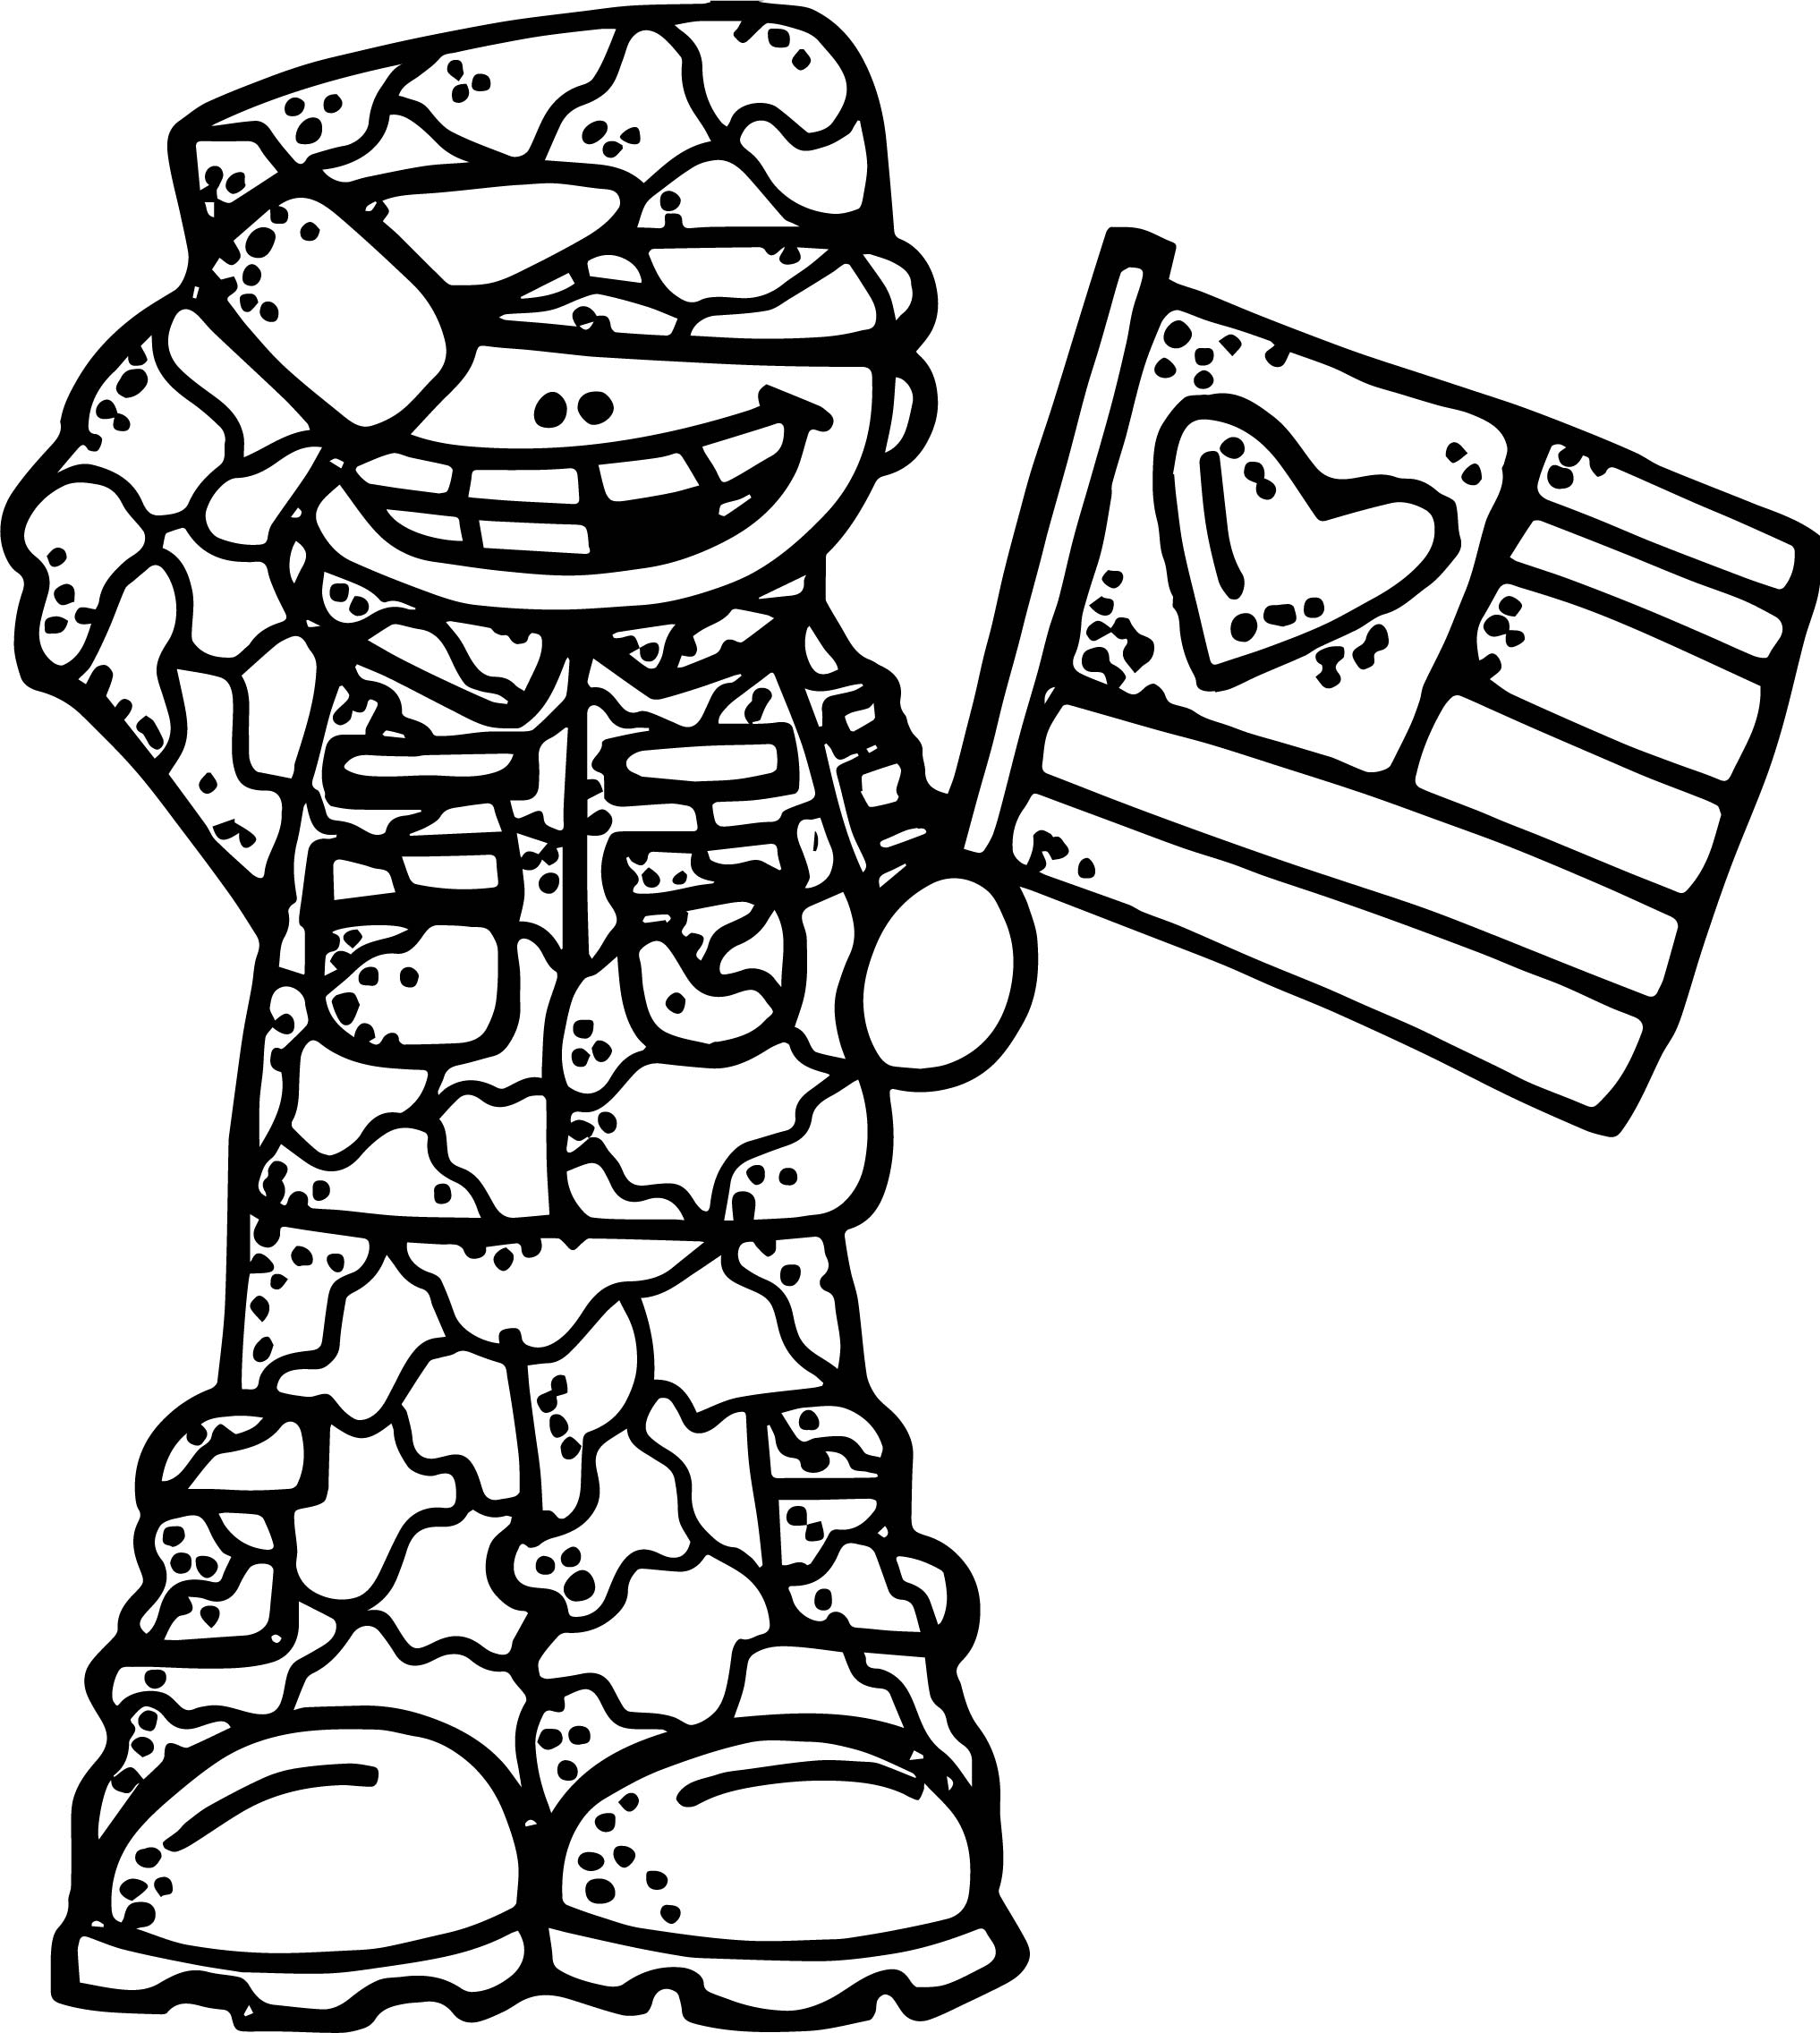 patriotic coloring pages - soldier boy flag coloring page